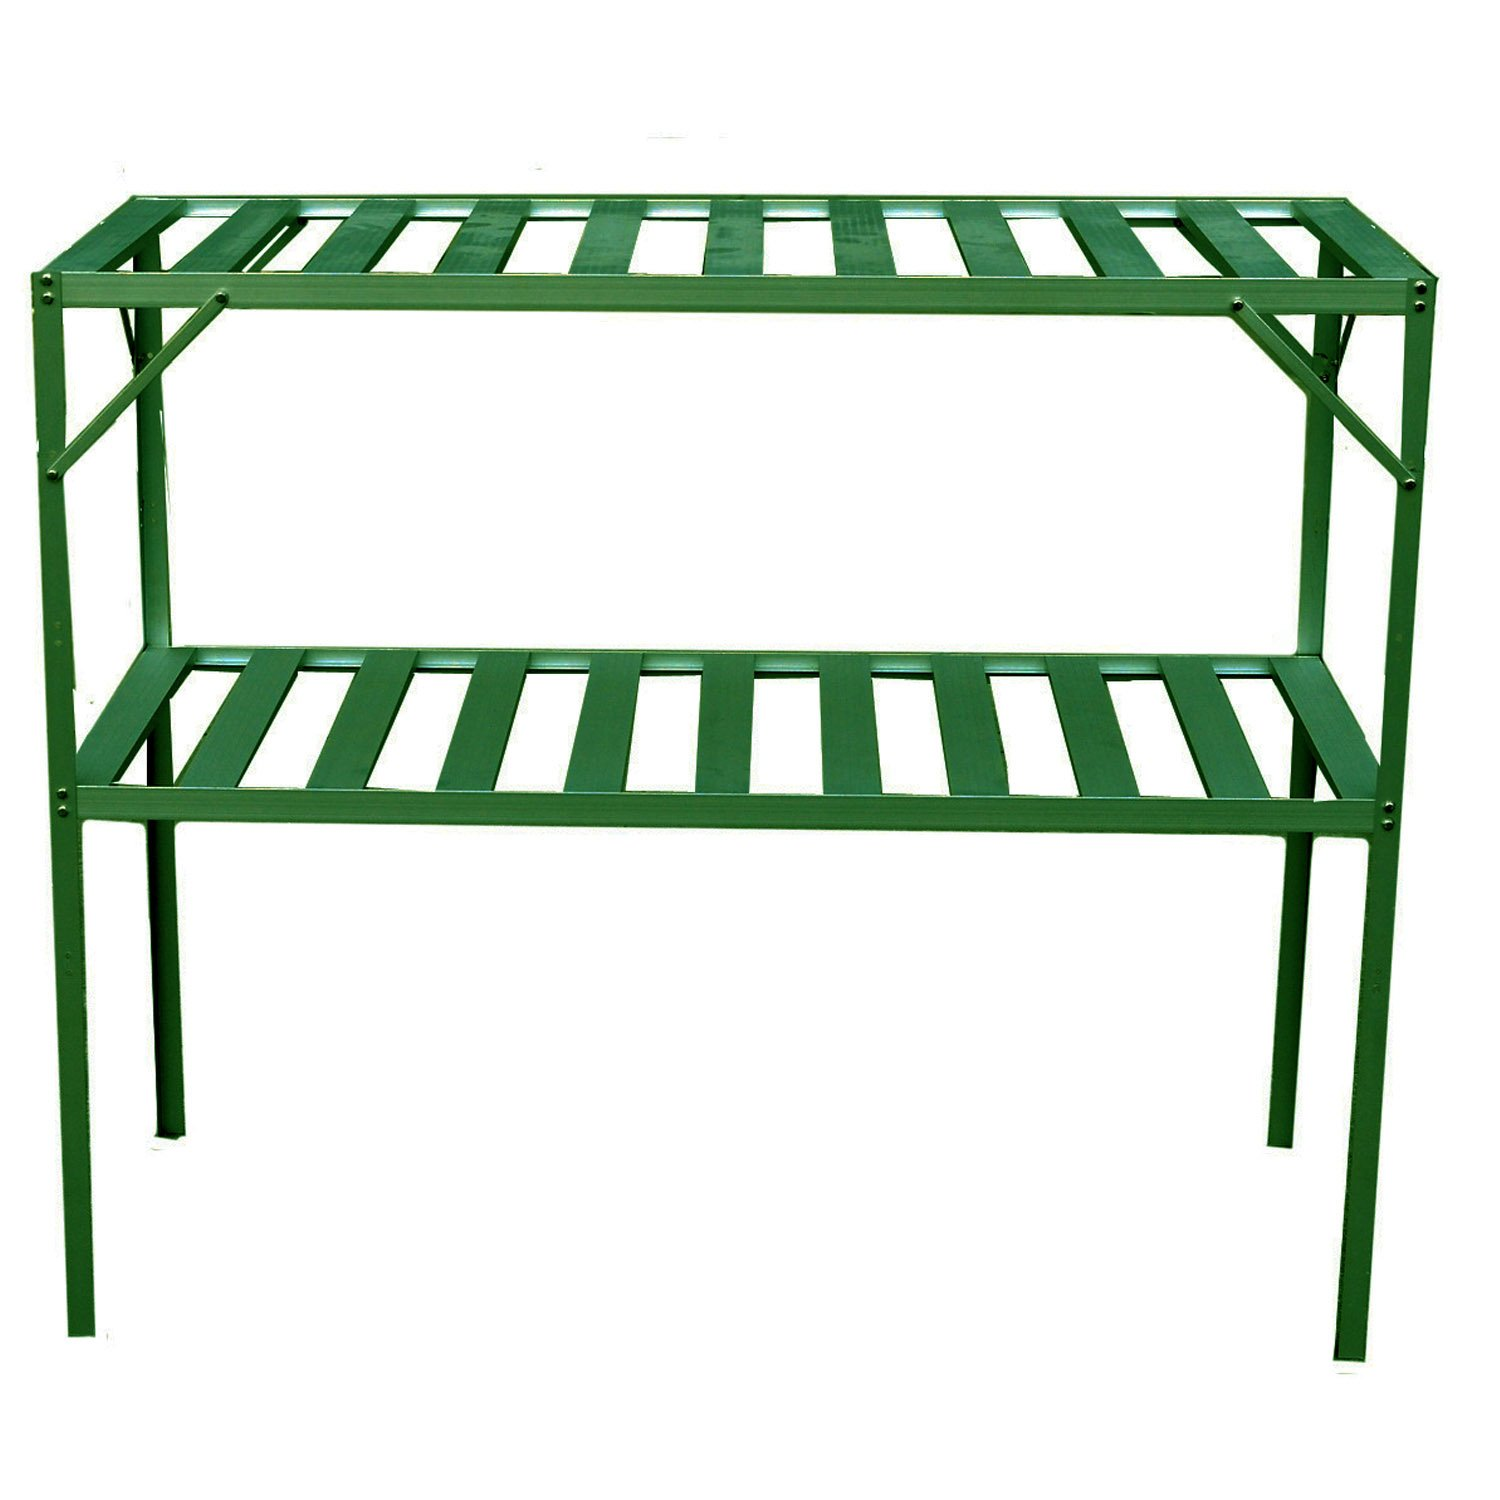 Exaco Trading  GH-GS117 Two Level Free Standing Staging Shelving for Bio-Star Greenhouses